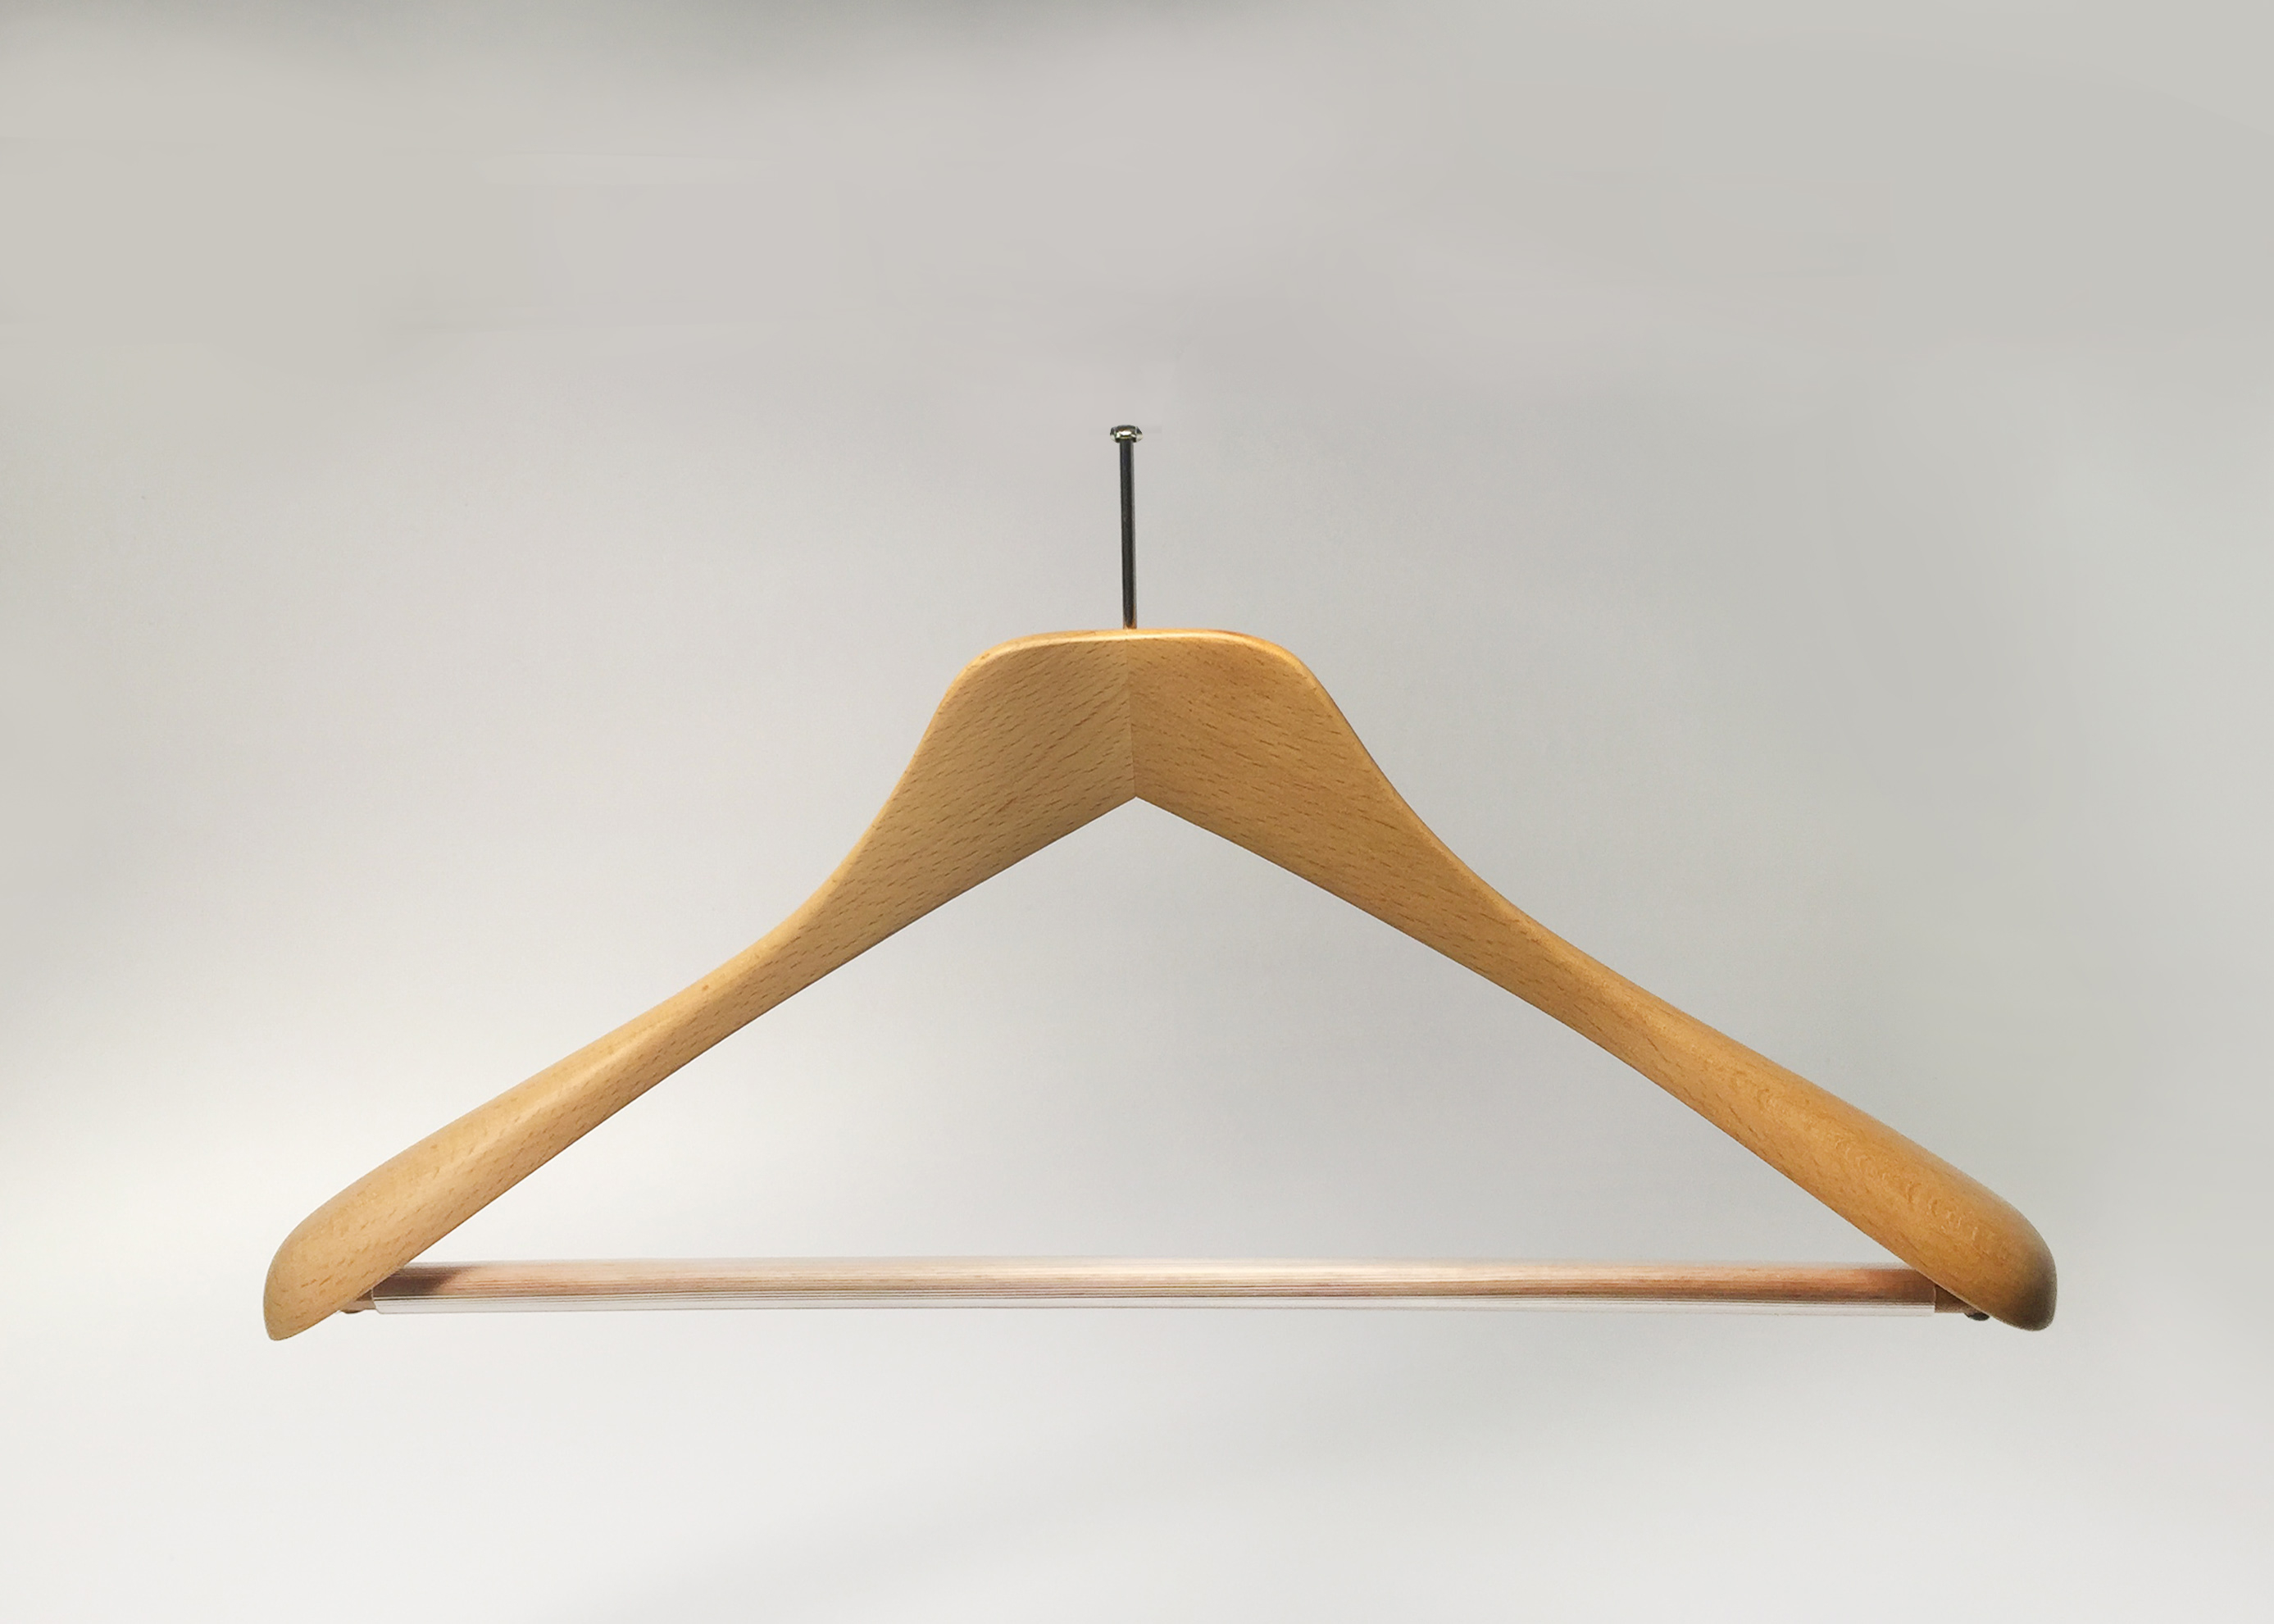 PAINTED WOODEN HANGER WITH ANTI-THEFT HOOK